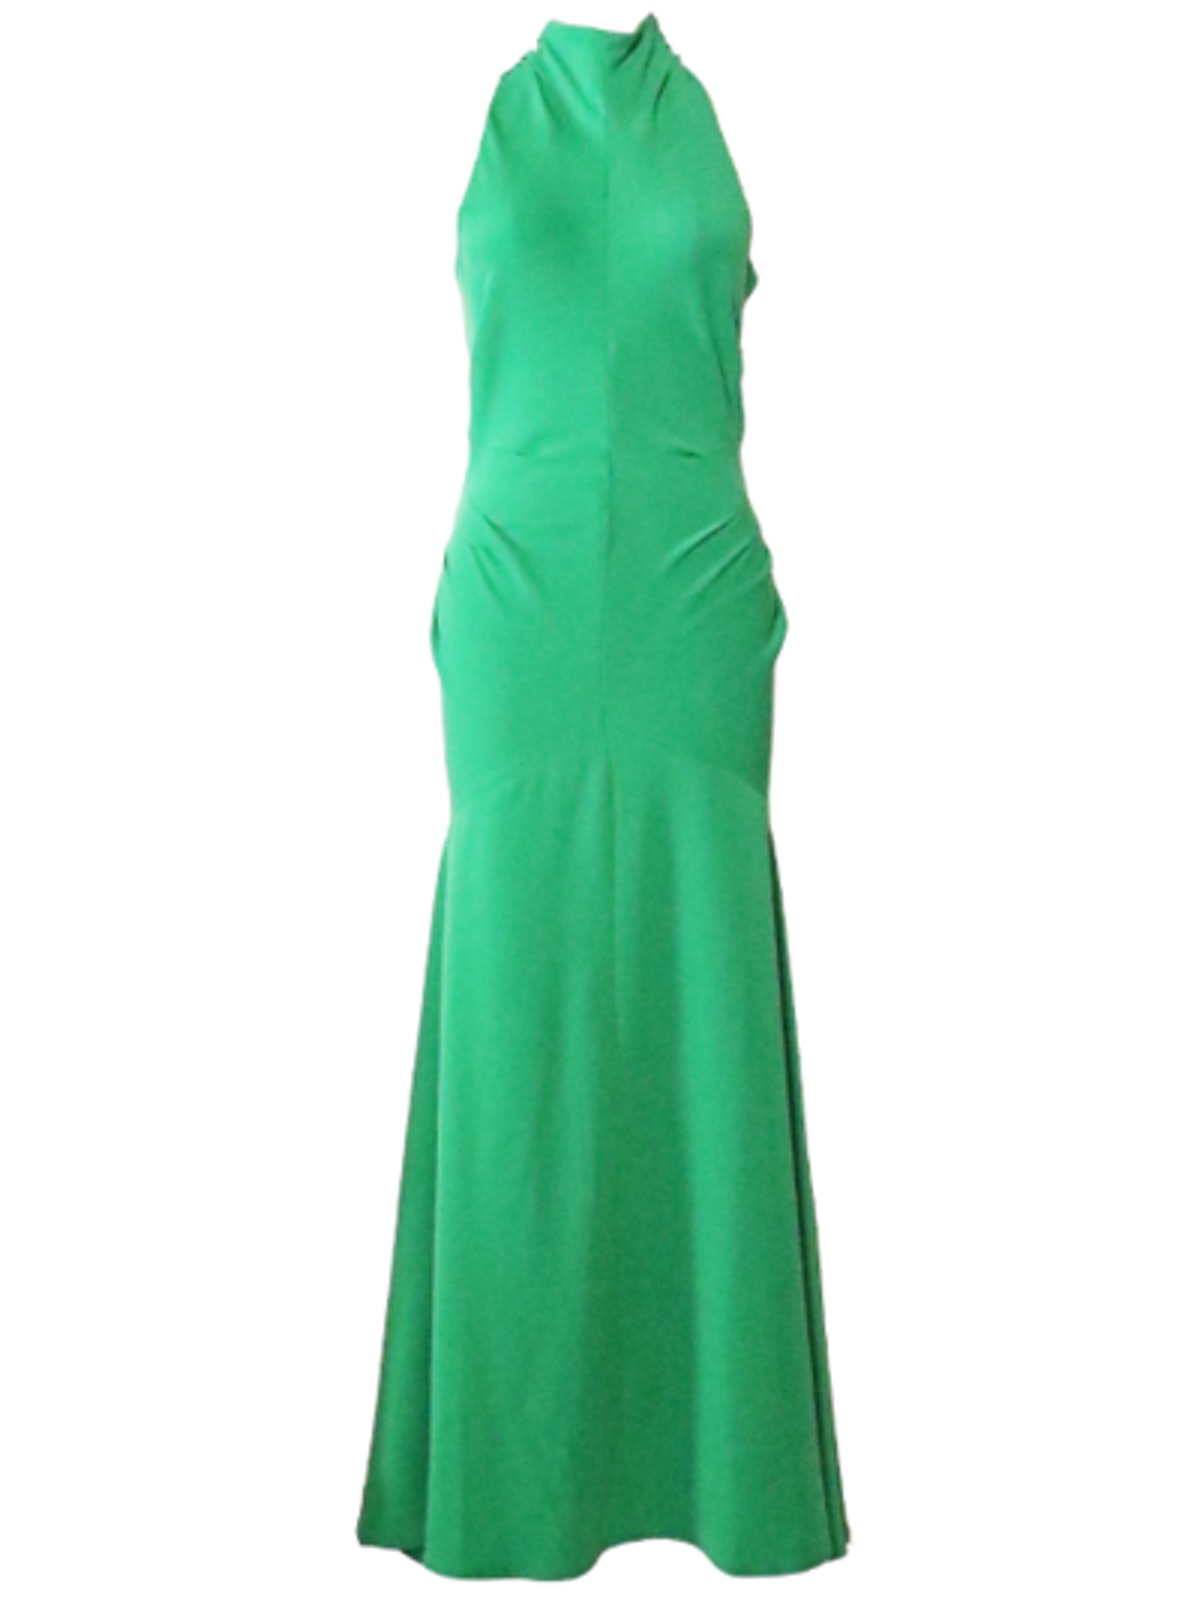 Long Tucked Halter Dress with Bow